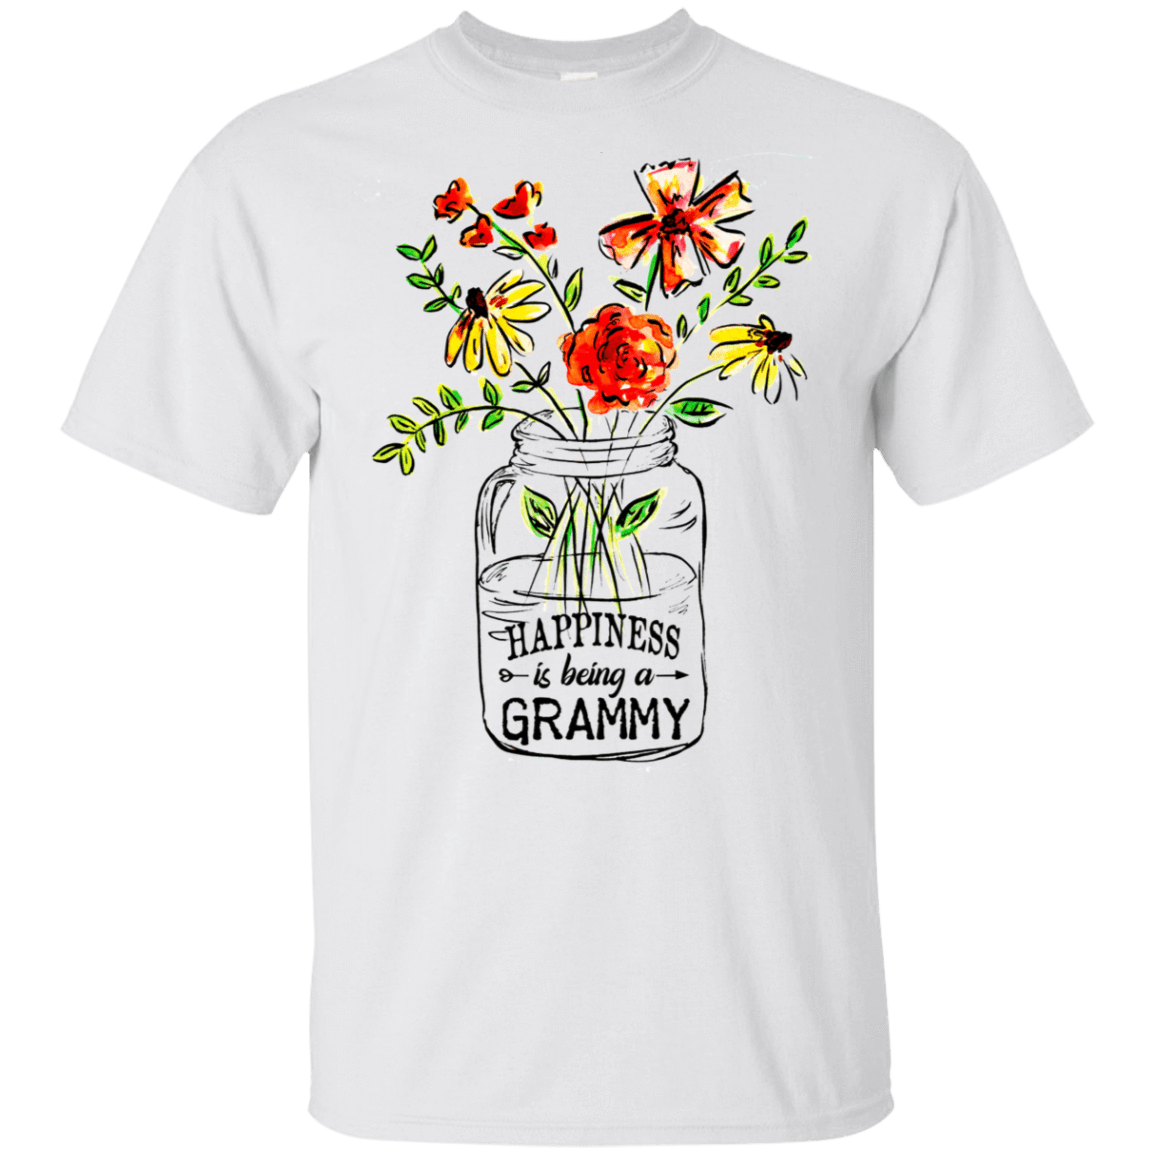 Happiness Is Being A Grammy Flower 22-114-74371522-253 - Tee Ript